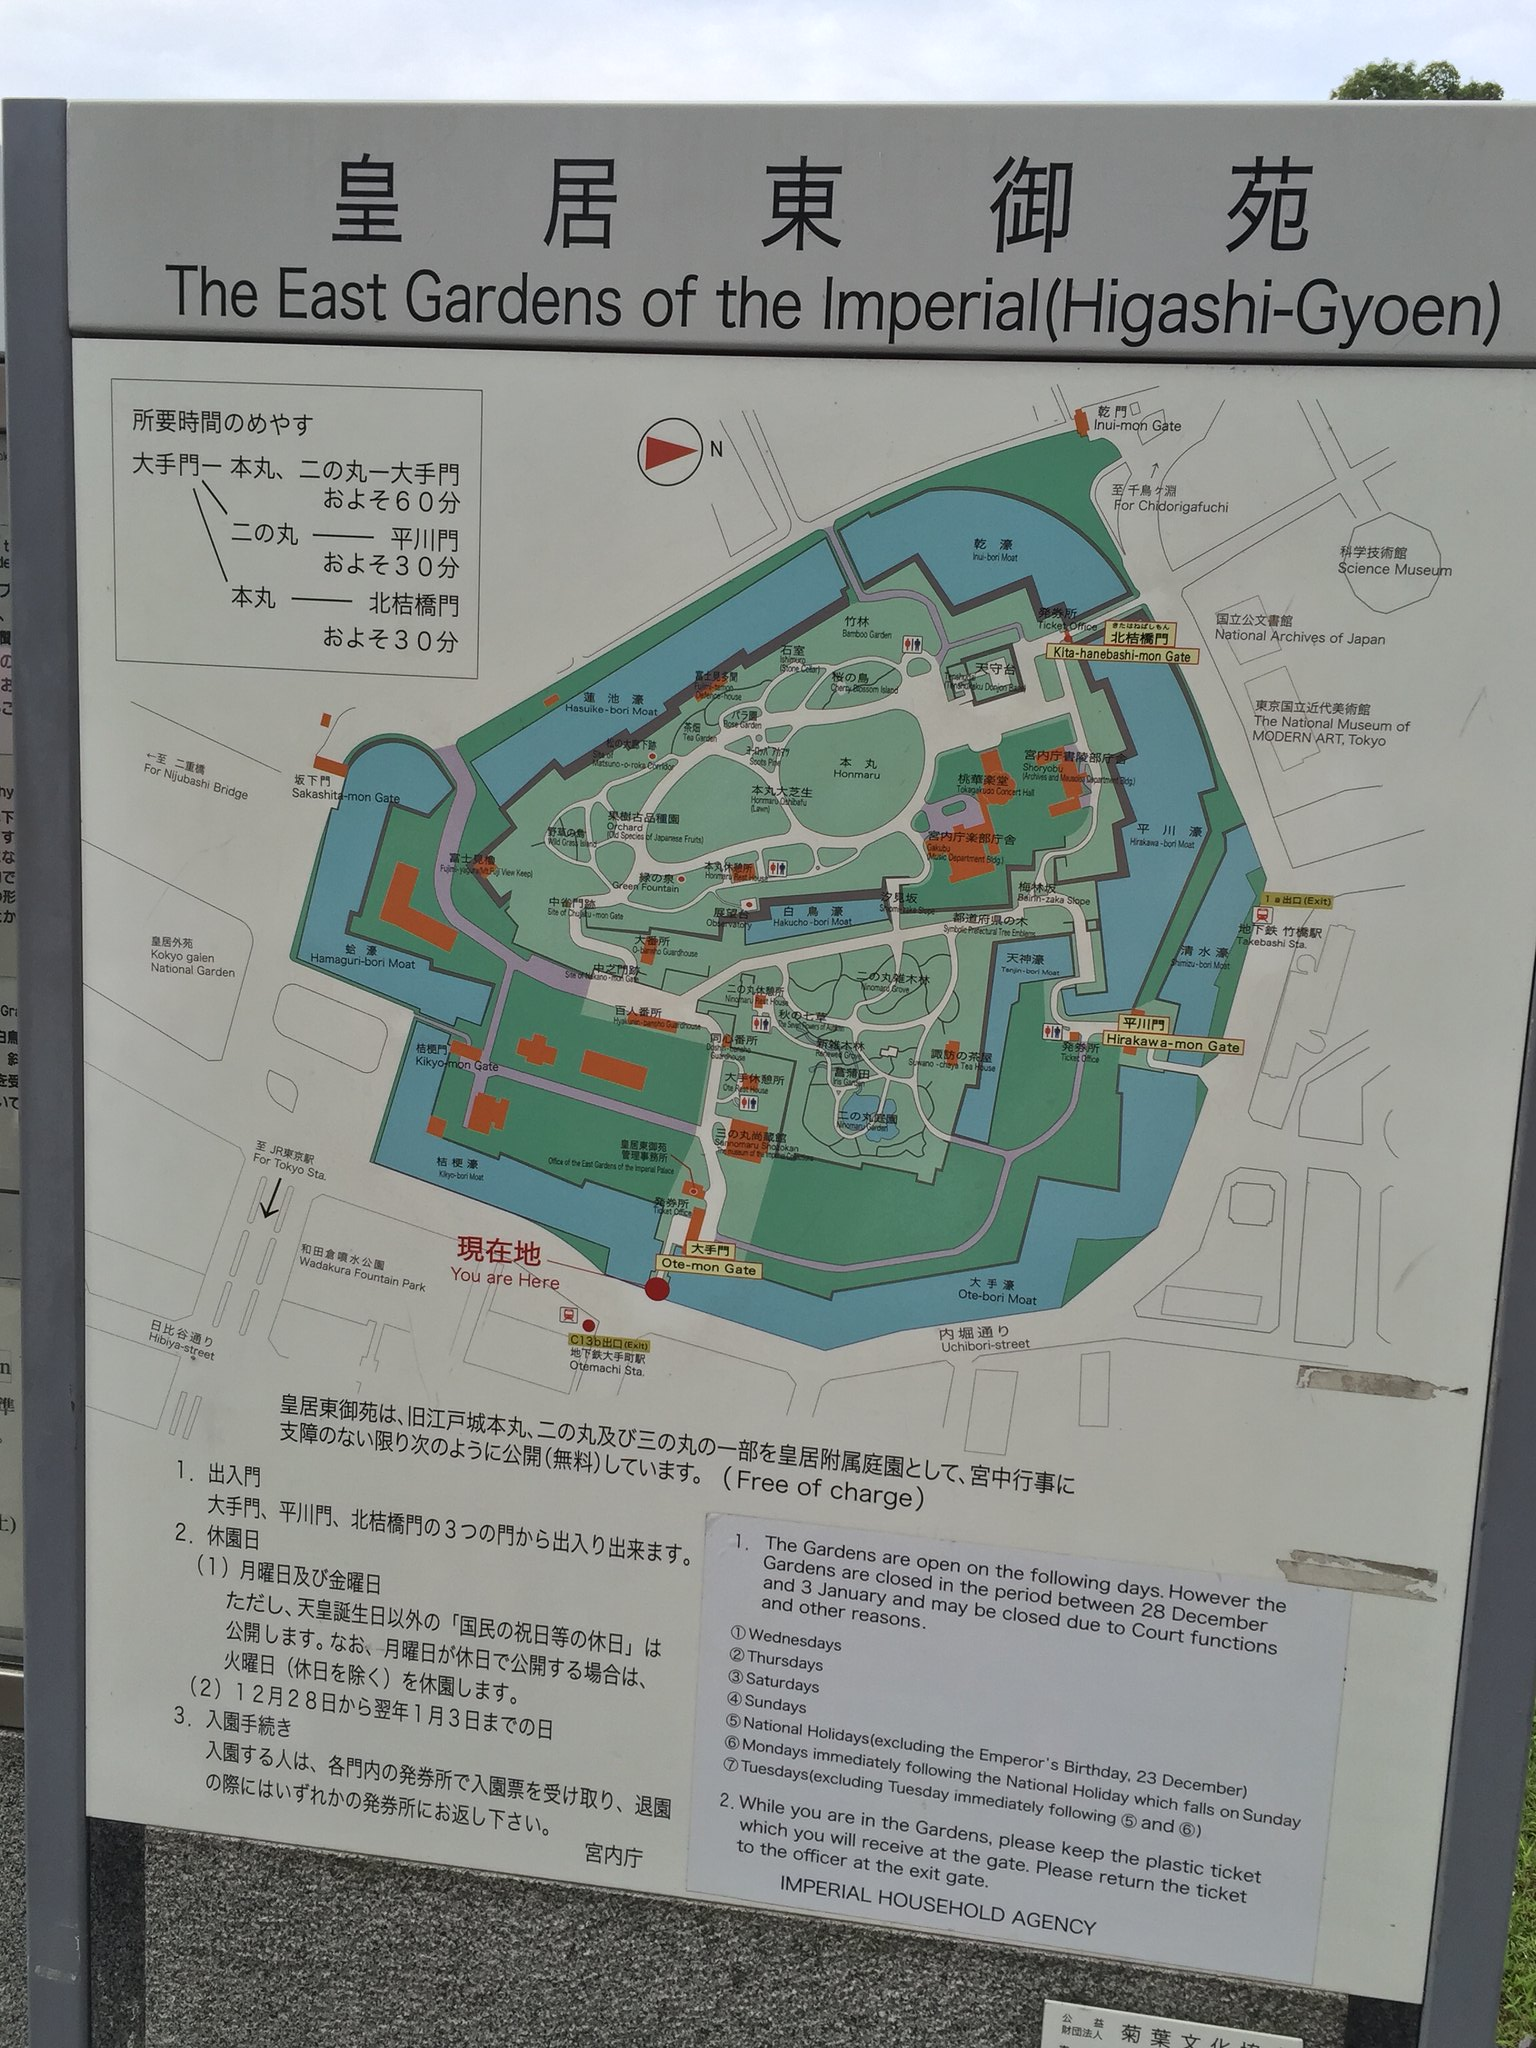 The East Gardens of the Imperial (Higashi-Goyen)